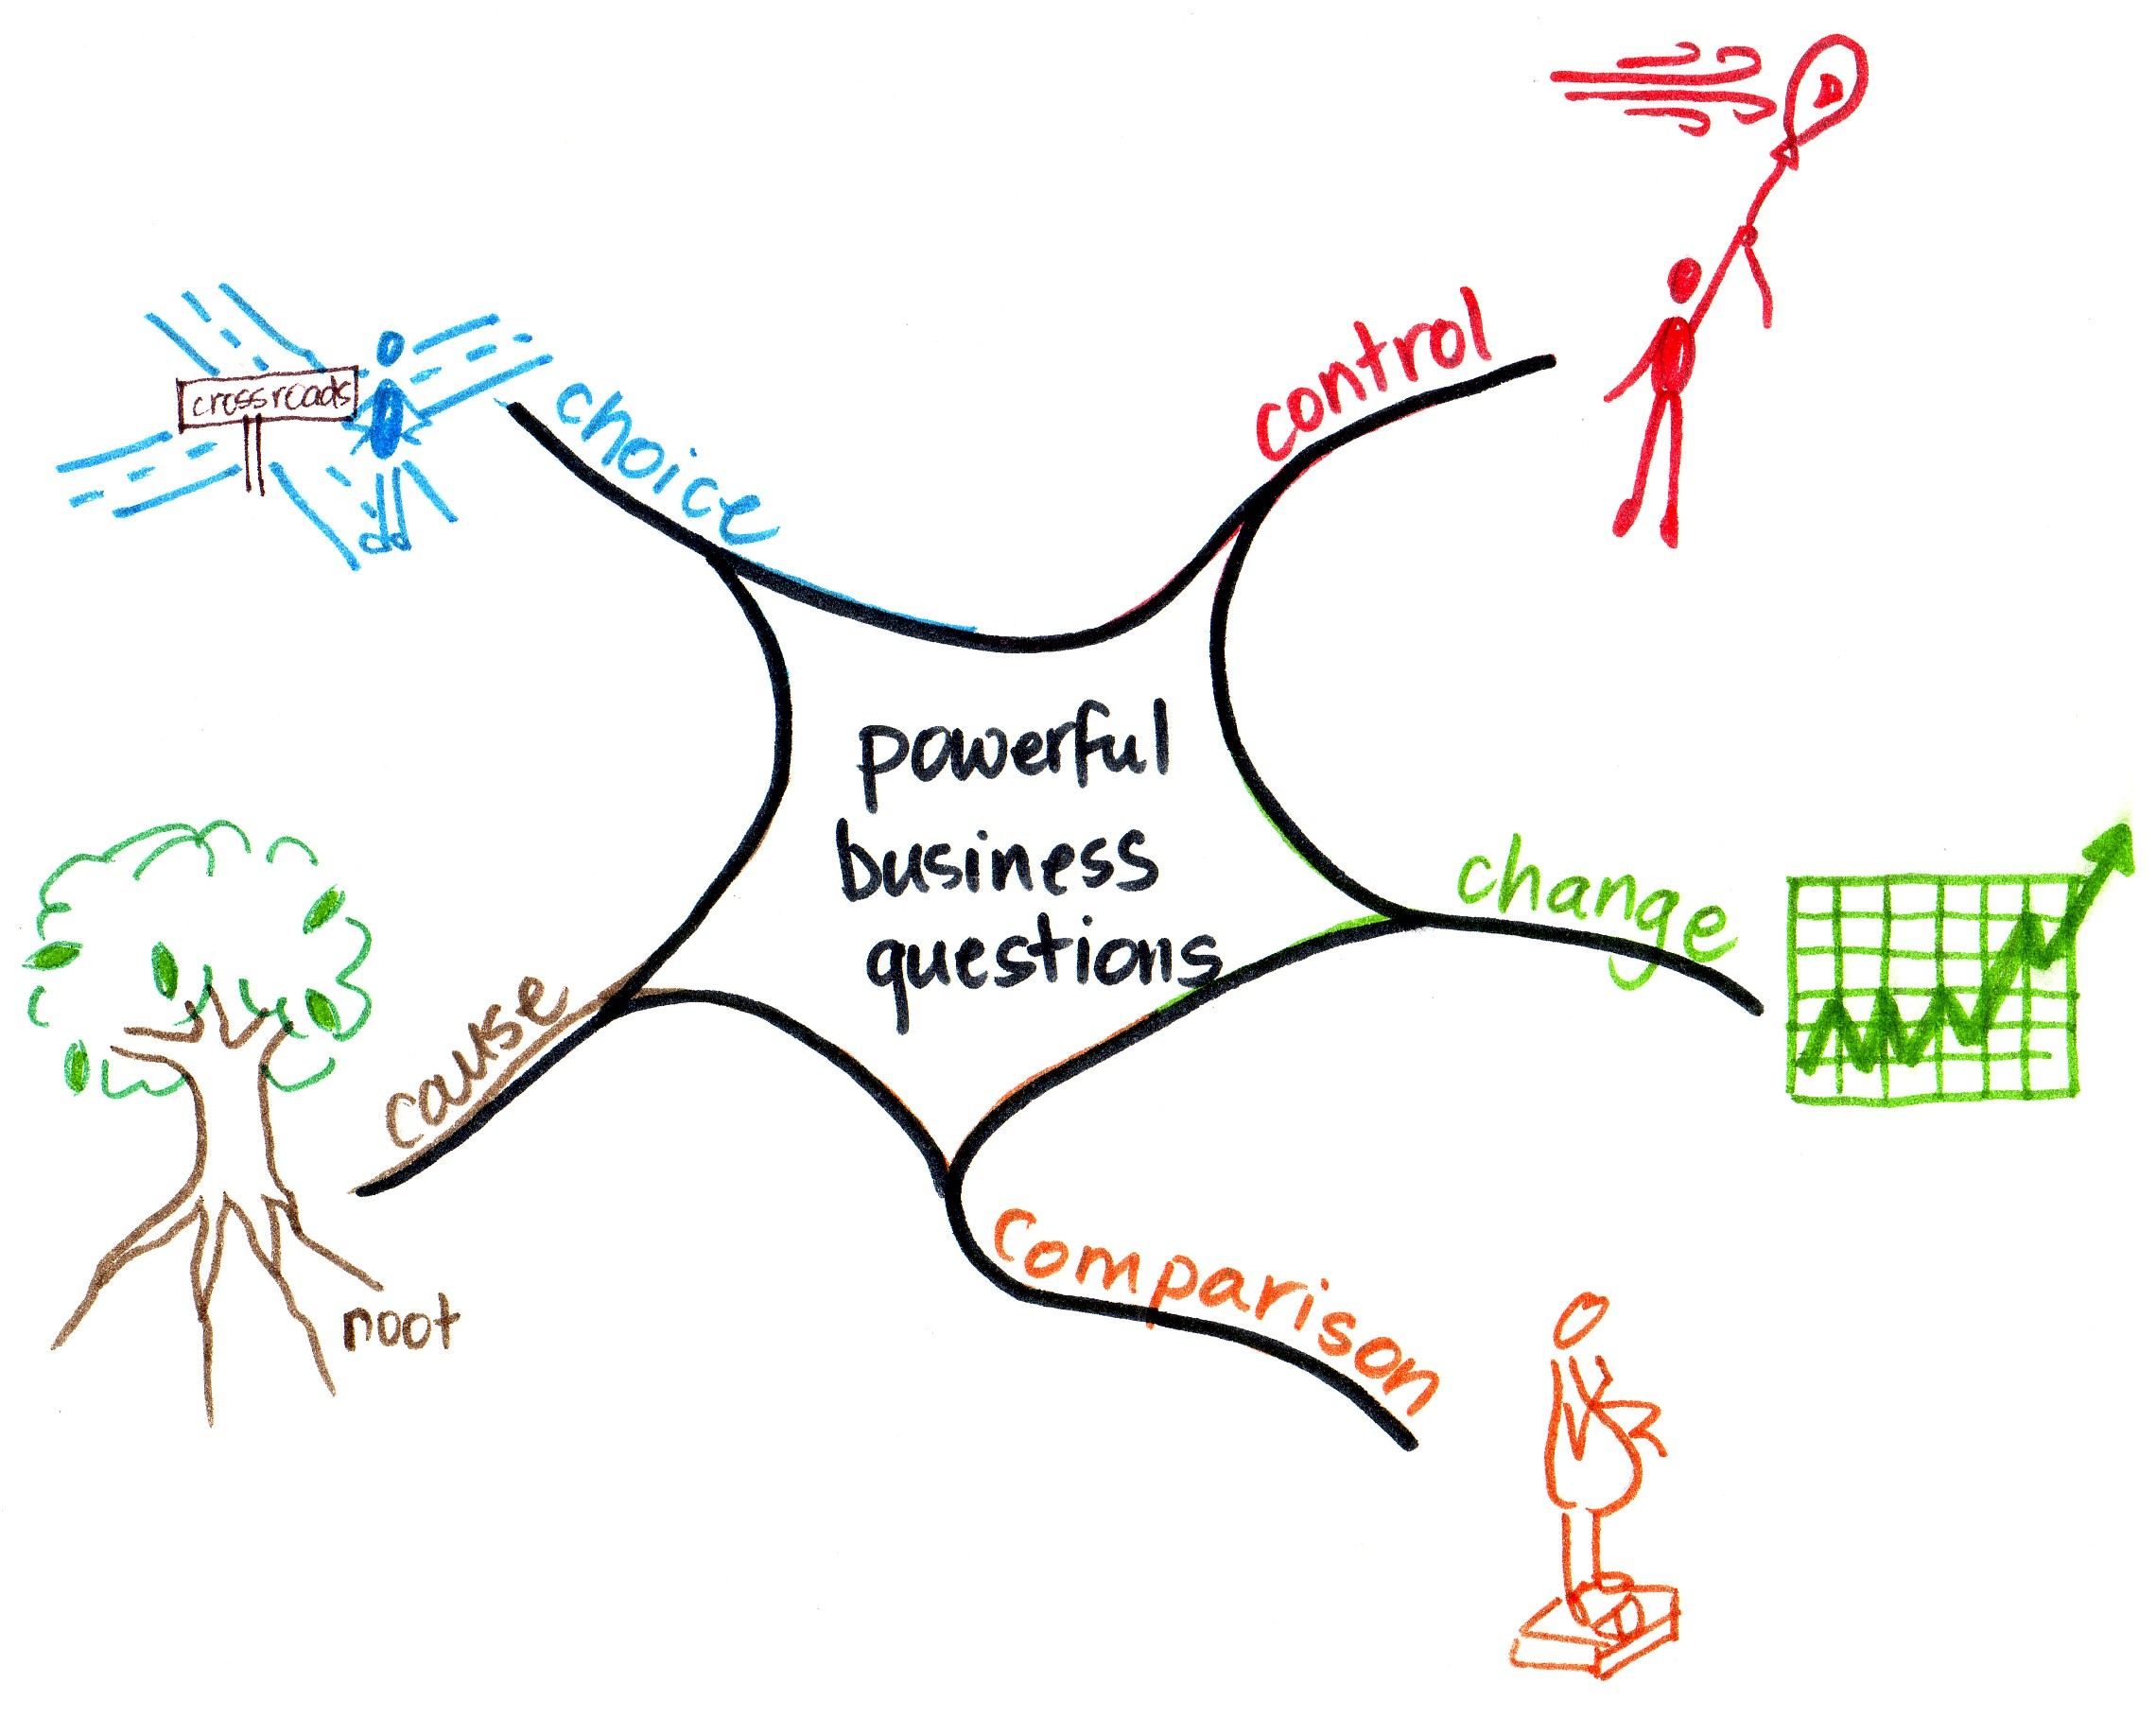 Stacey's artwork for the 5 powerful business questions that will guide analytics